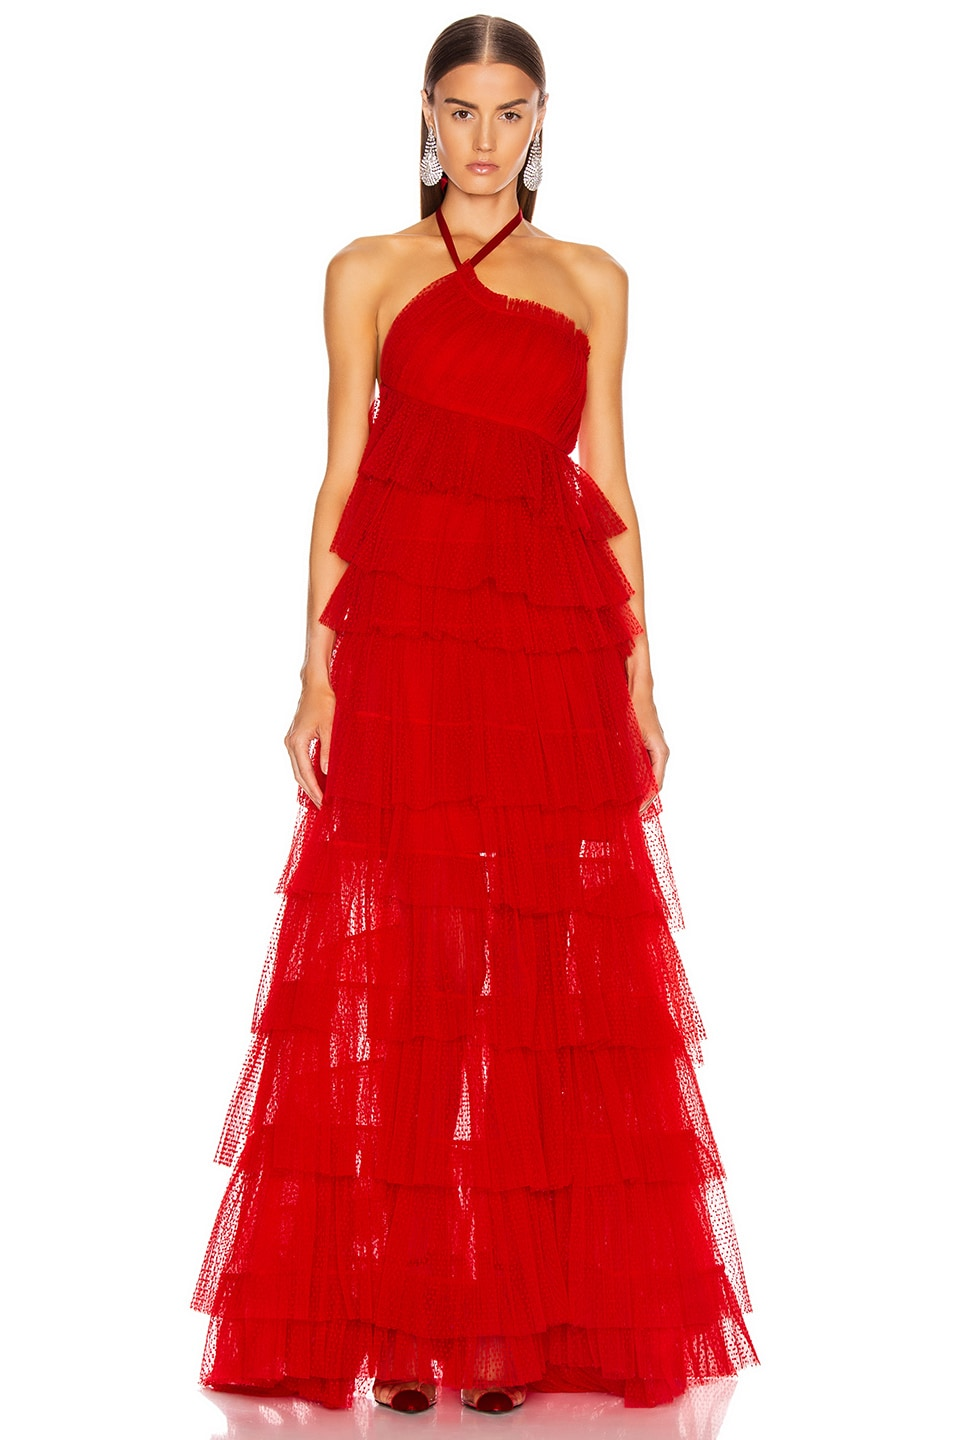 Image 1 of Alexis Justinia Dress in Cherry